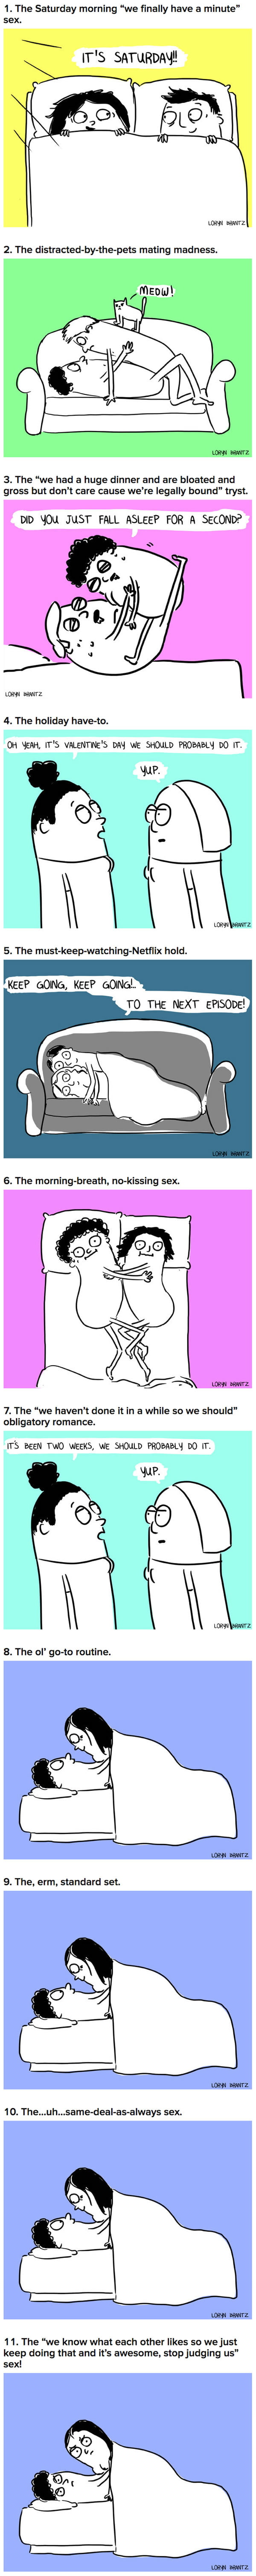 11 Types Of Sex Married People Or Couples Who Live Together Have